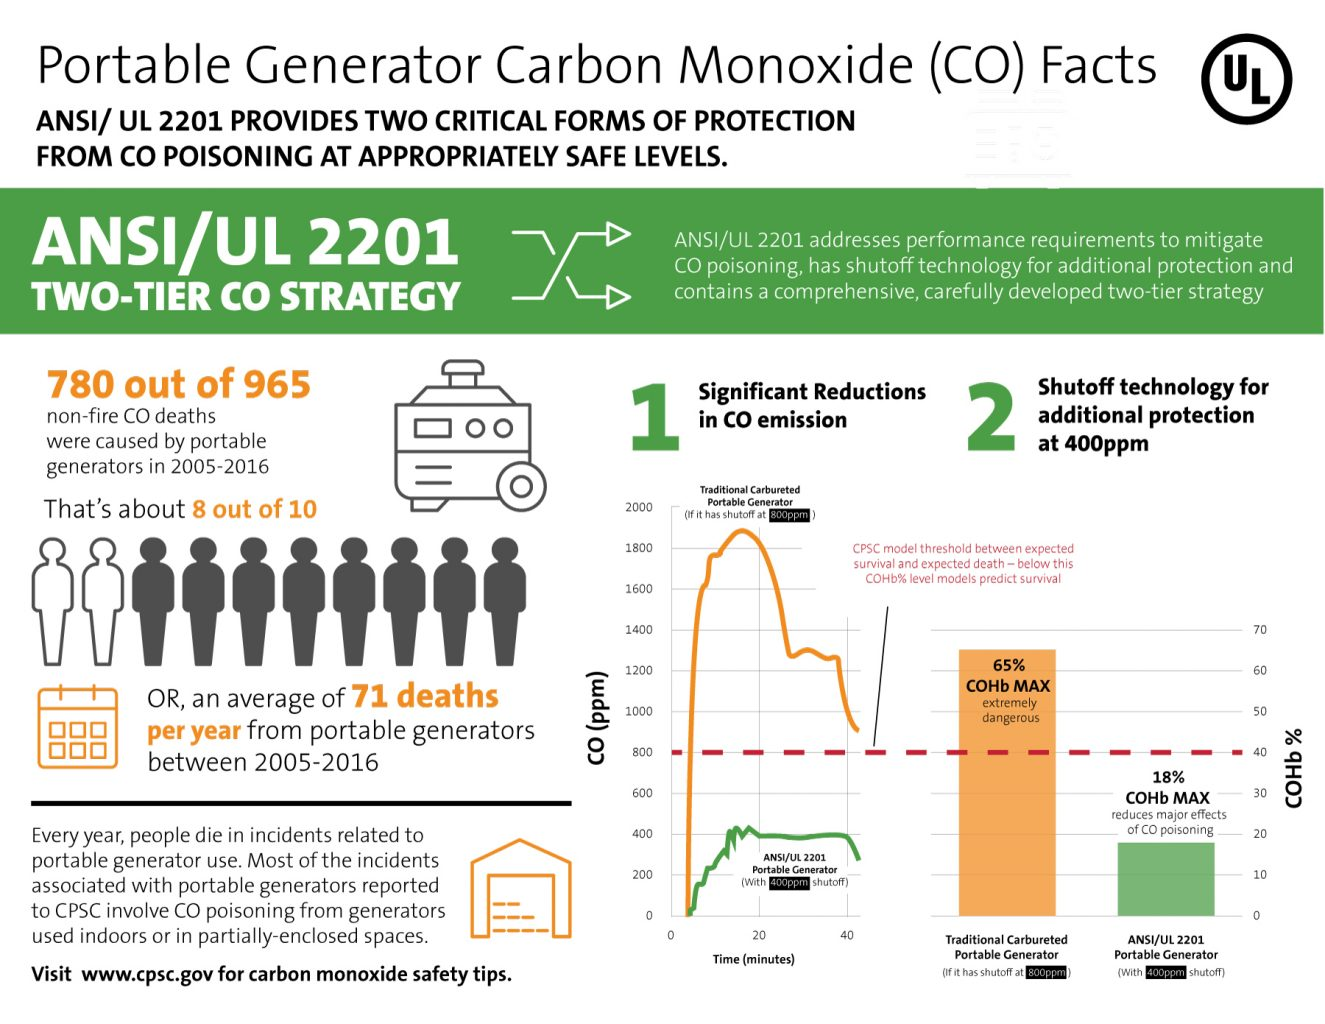 Carbon monoxide facts infographic